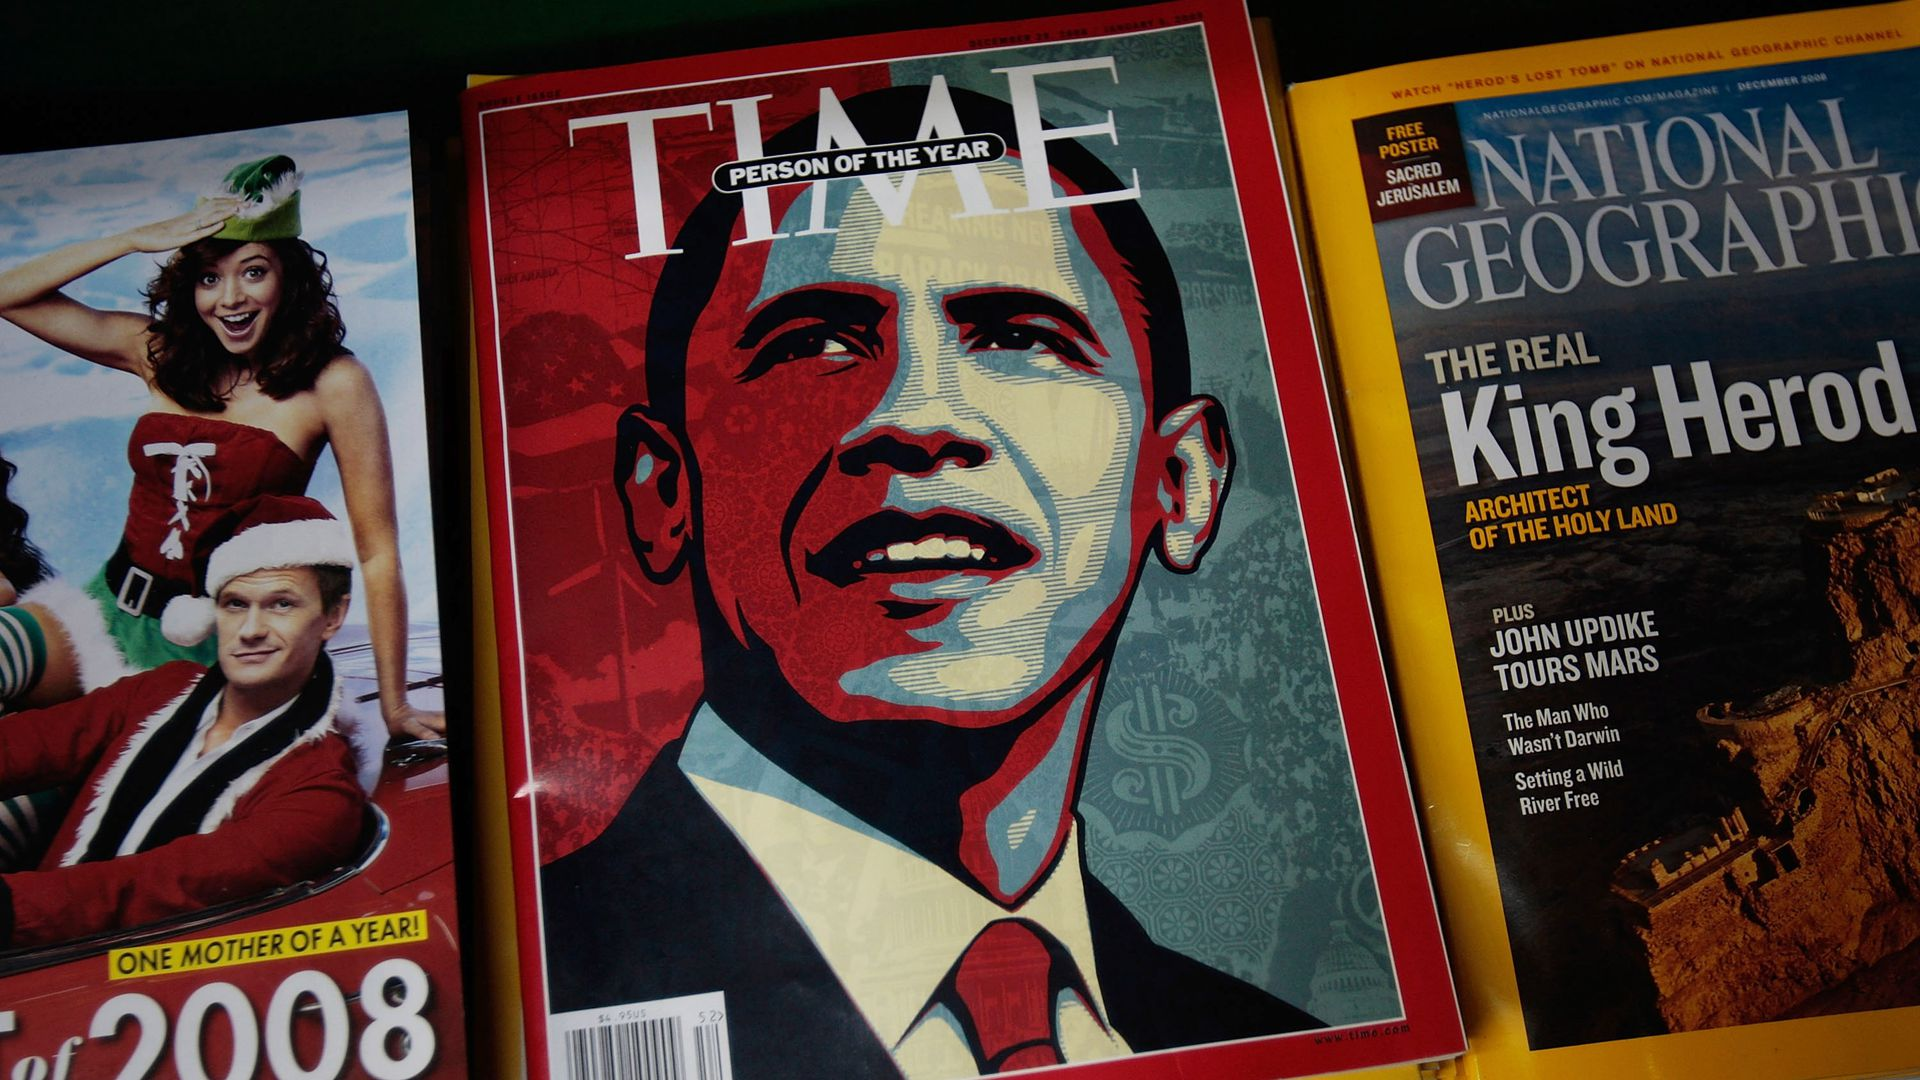 Cover of Time magazine in 2008. Photo: Chris Hondros/Getty Images